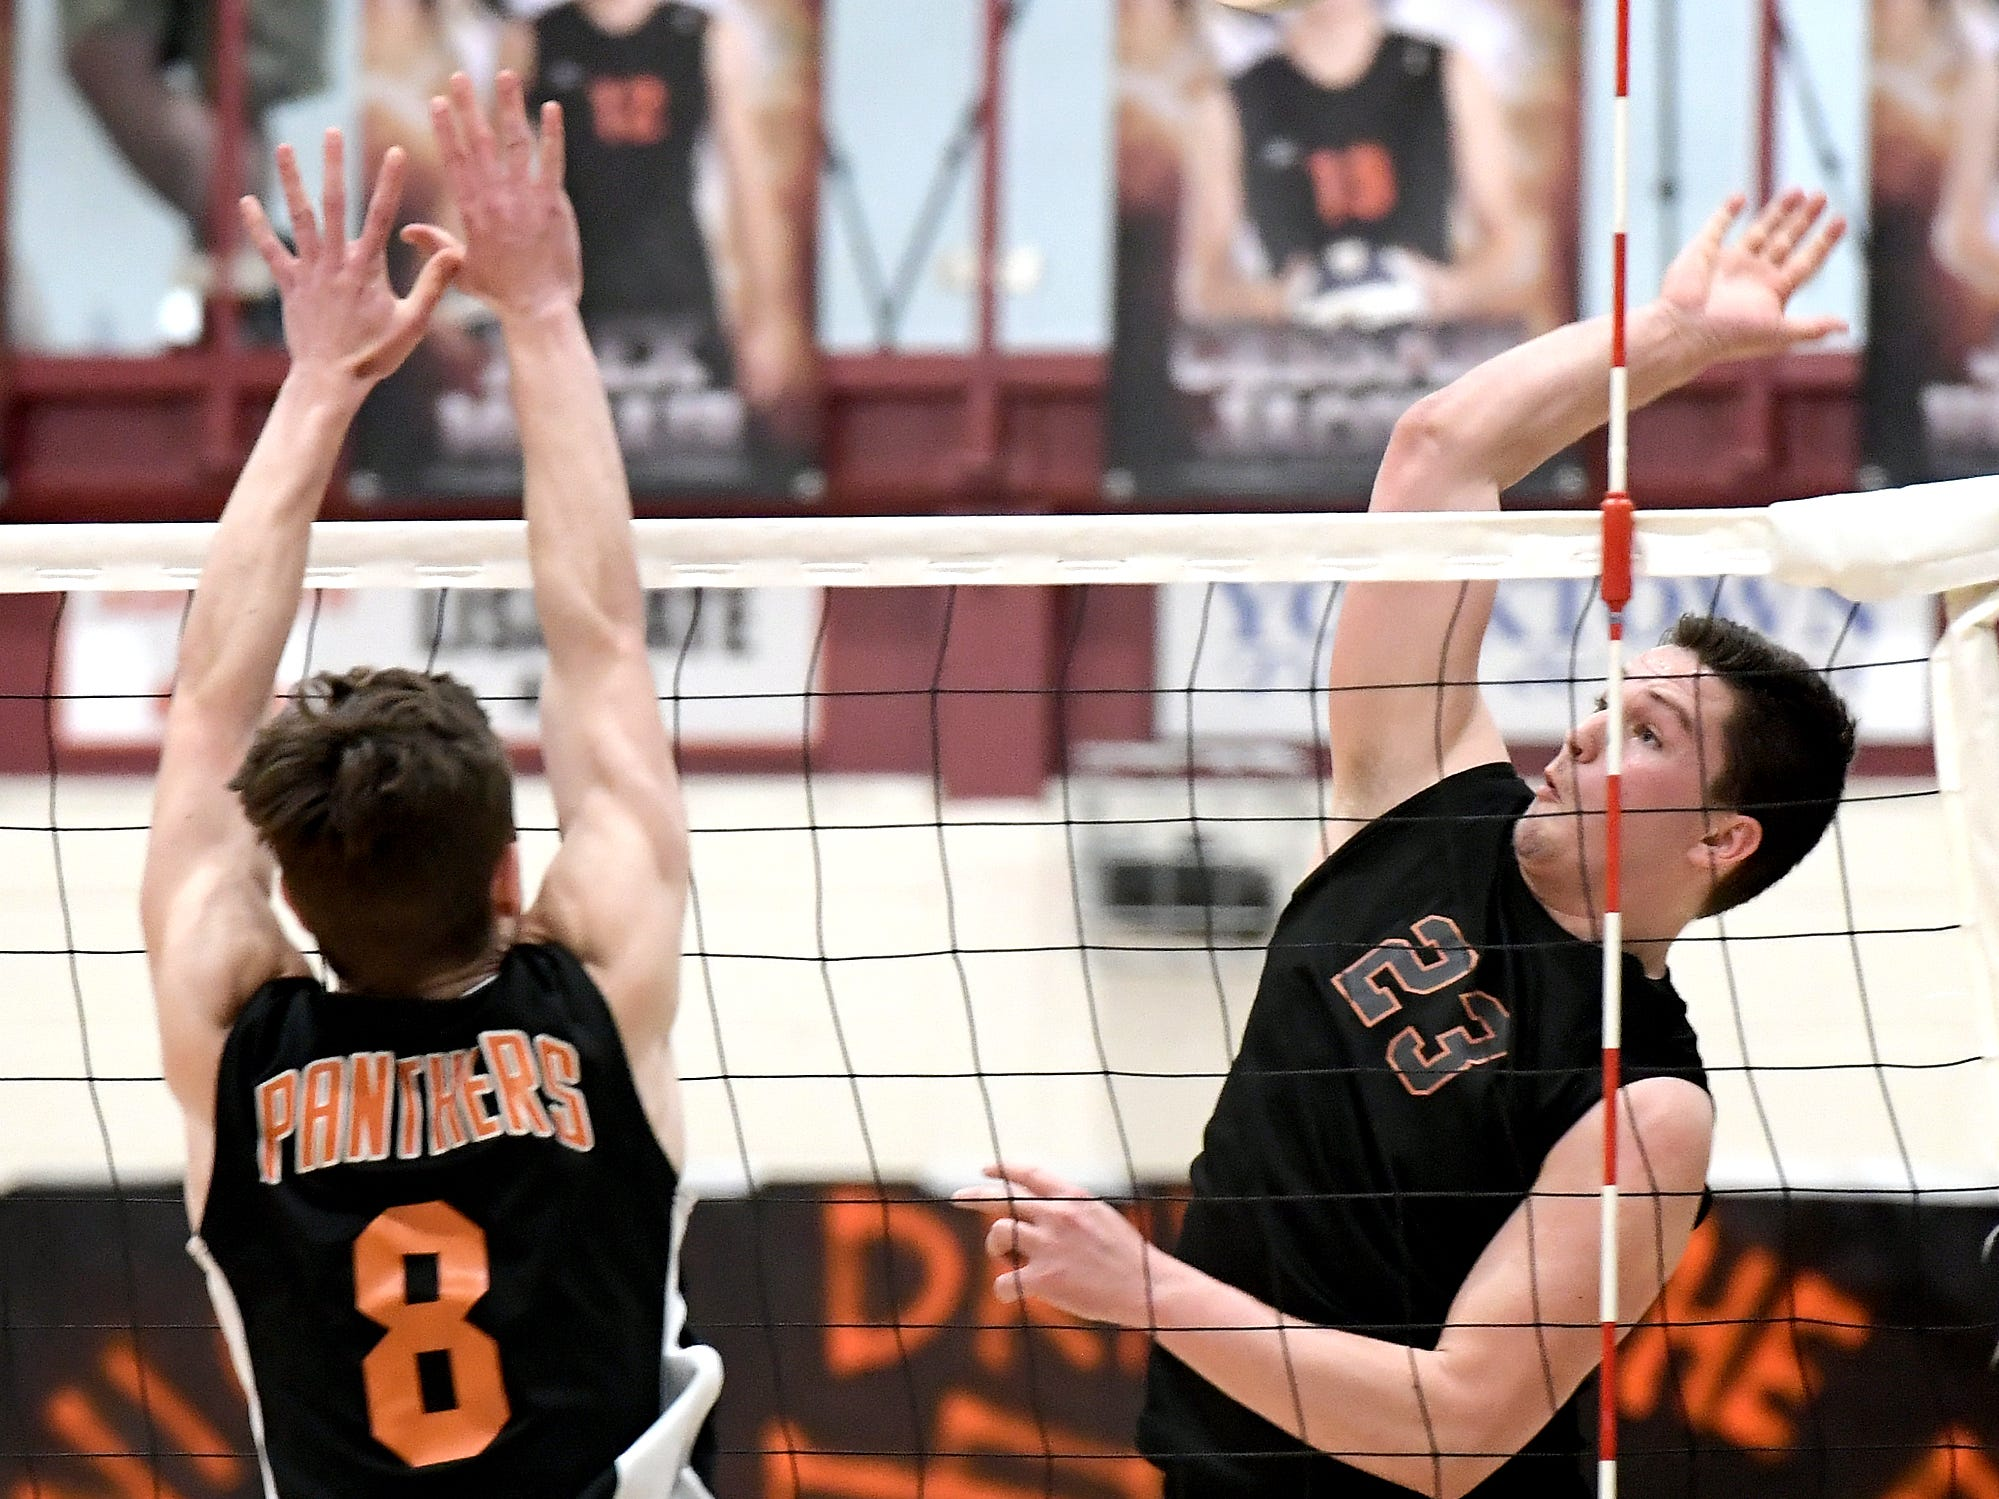 Northeastern's Alex Finch slams a shot past Central's Brock Anderson, left, during action at Central York Tuesday, May 7, 2019. The Bobcats earned the York-Adams League regular-season title with a 3-1 win. Bill Kalina photo